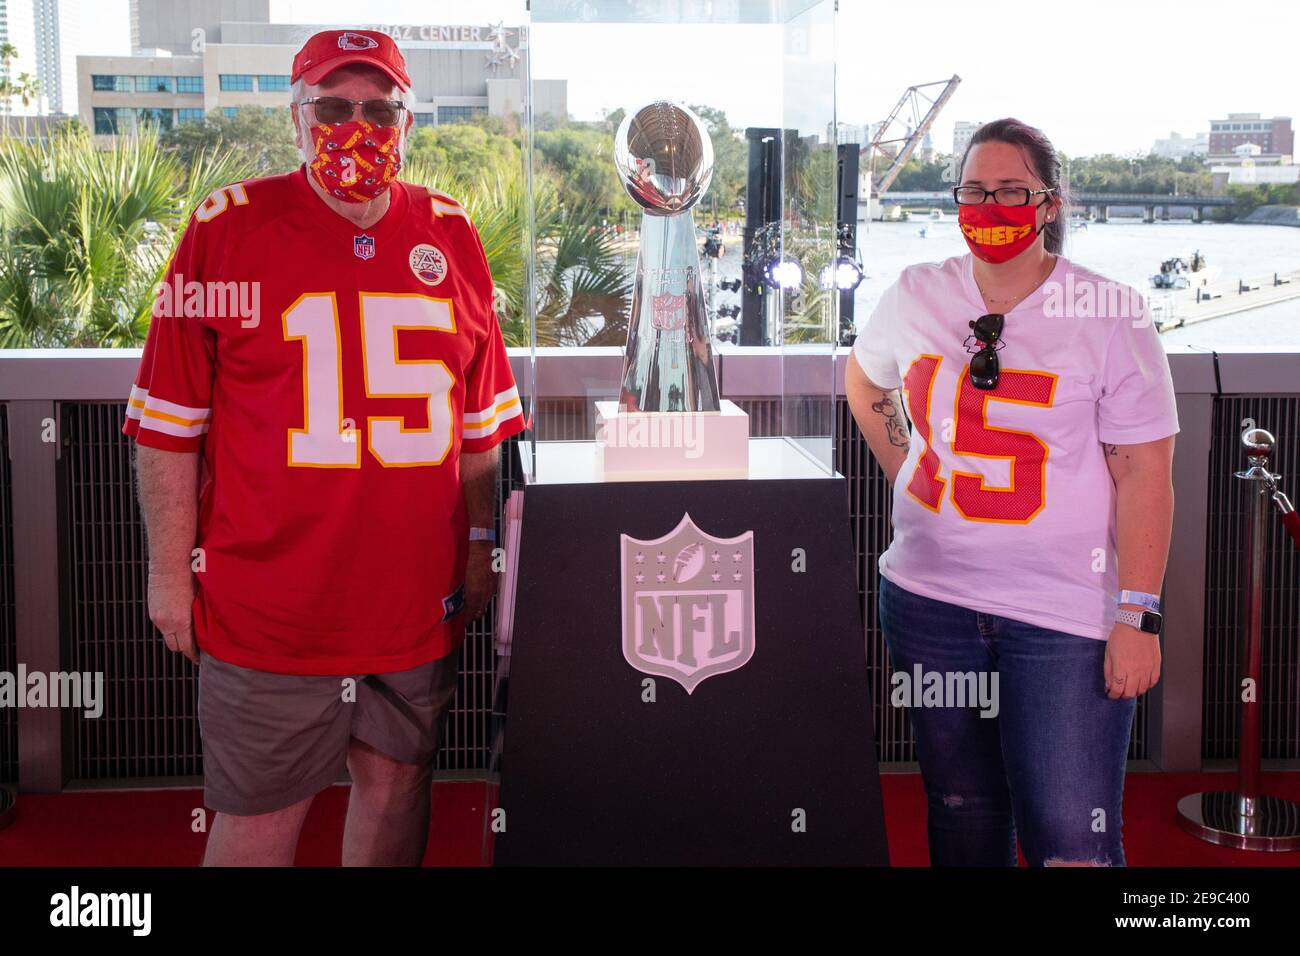 Saturday, January 30, 2021; Tampa, FL, USA; Fans pose with the ...